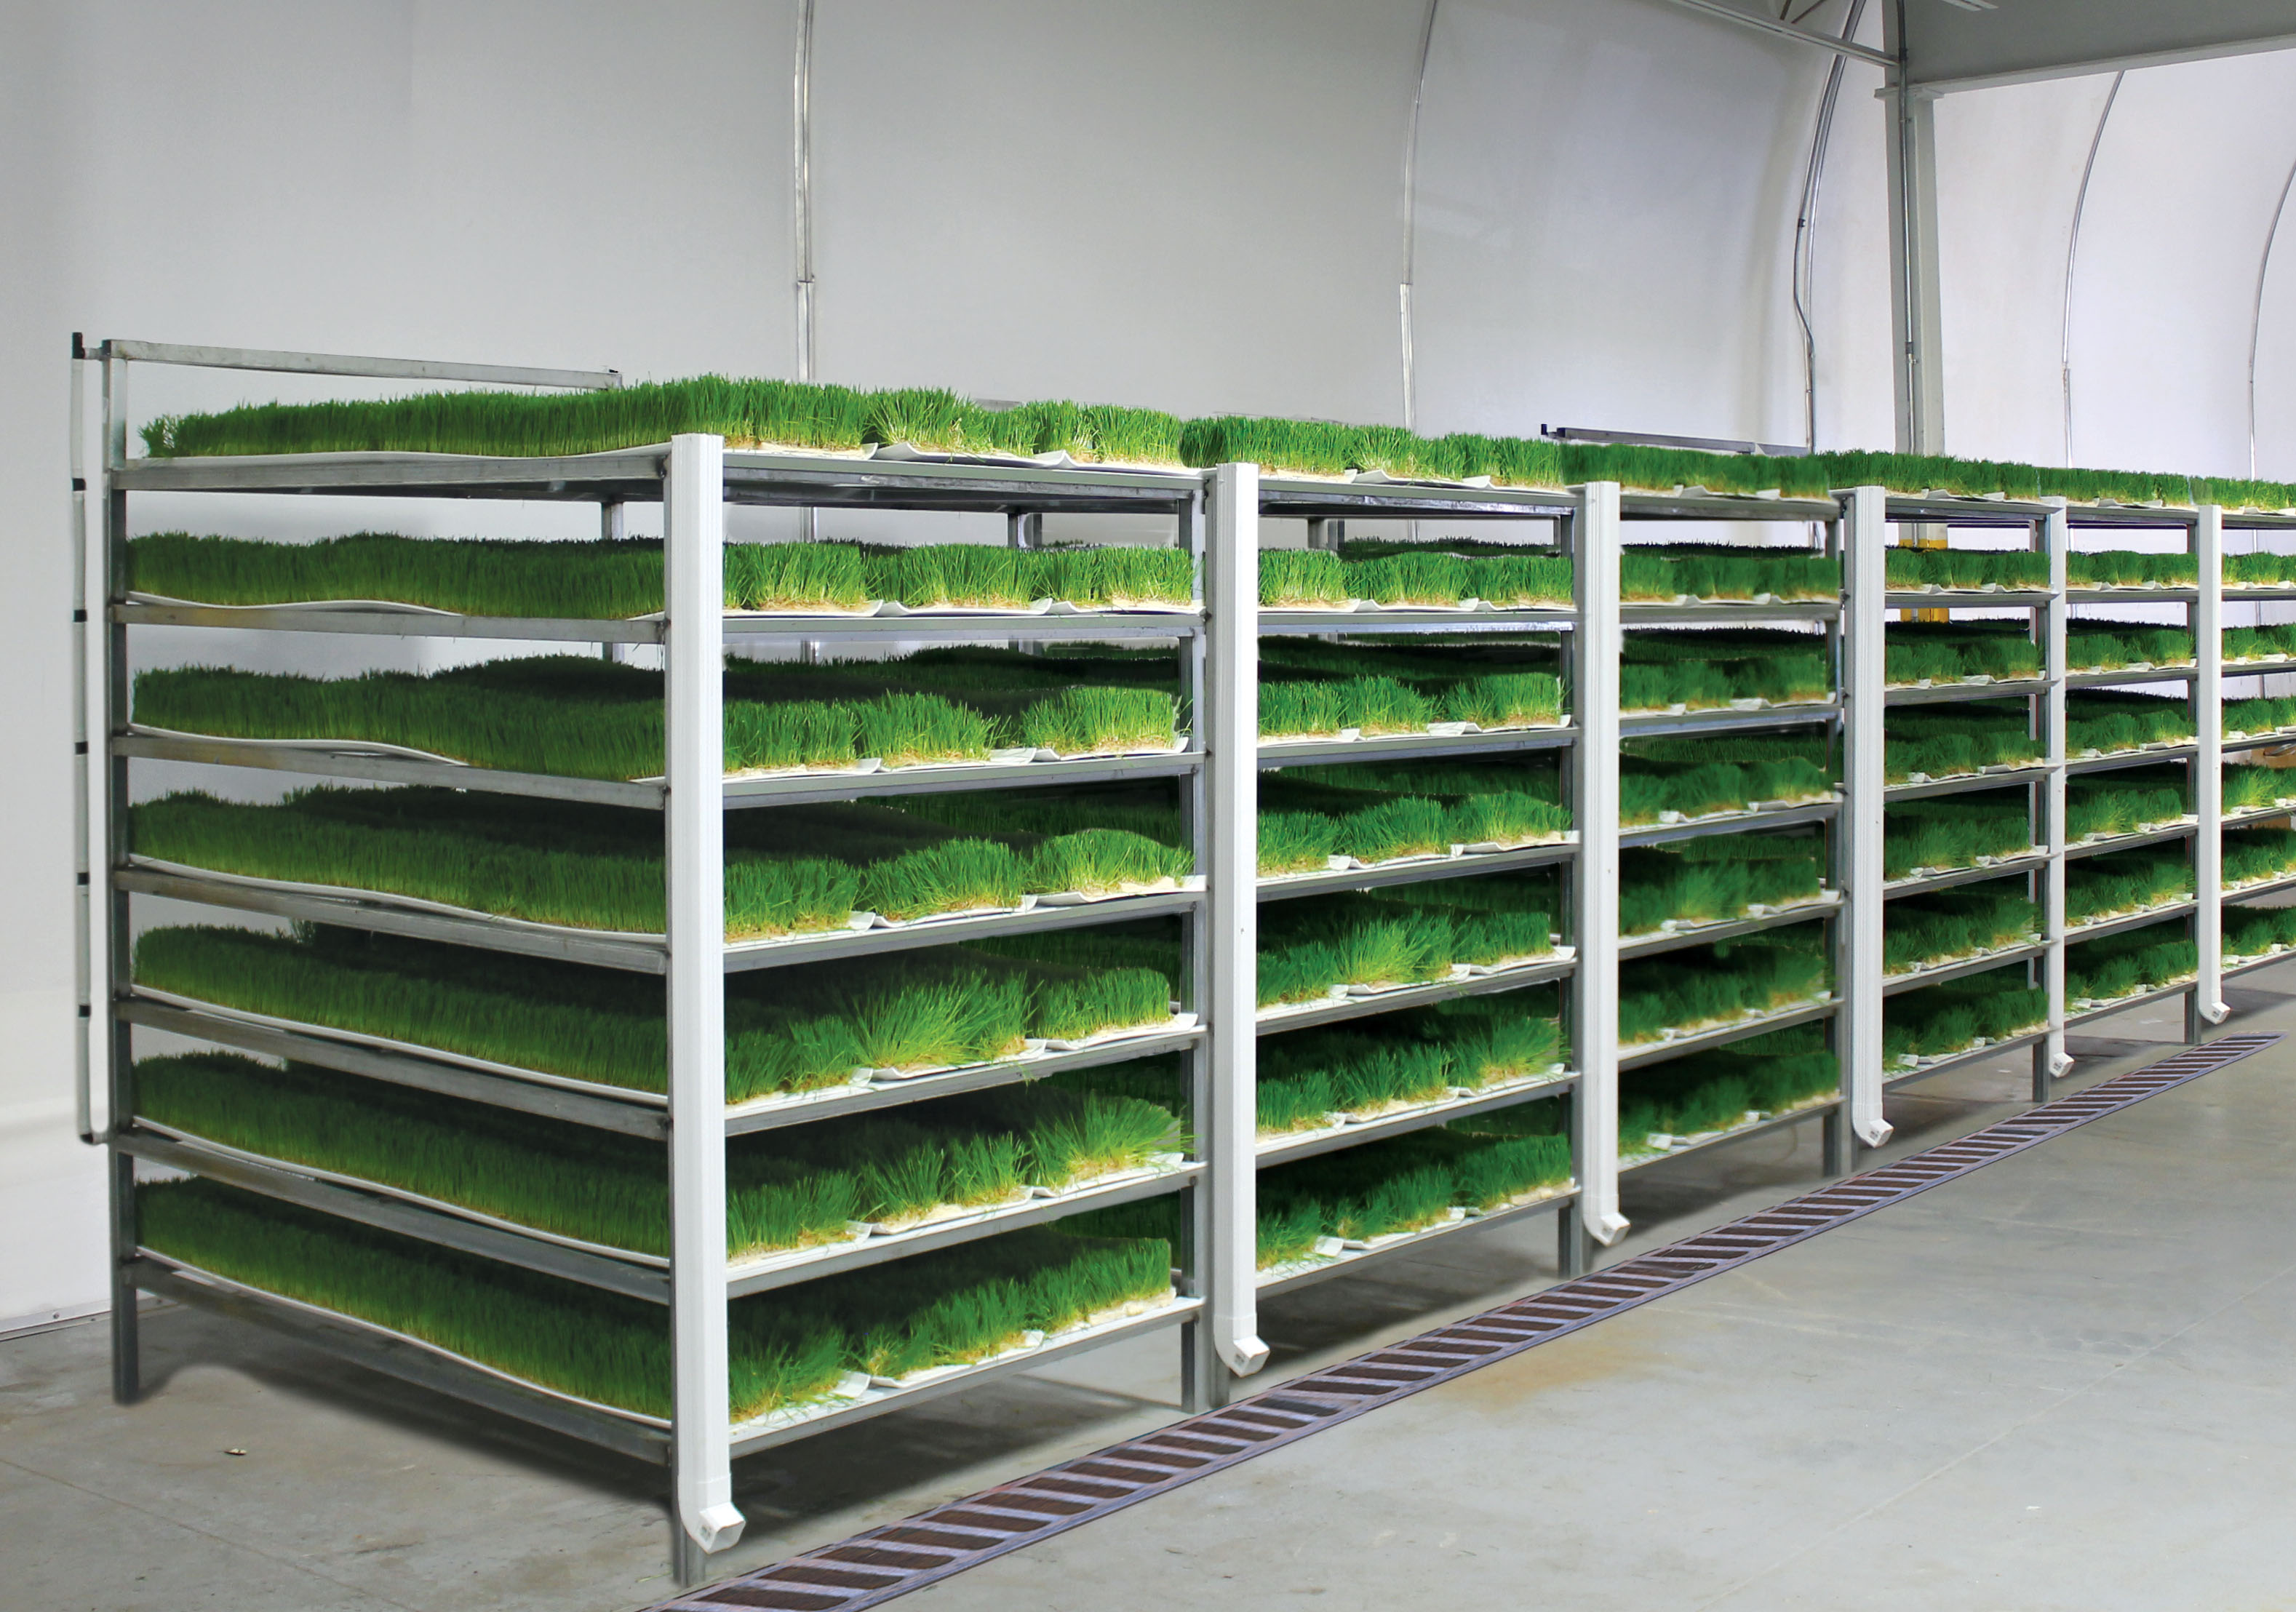 Farmtek Introduces Commercial Fodder Systems And Turnkey